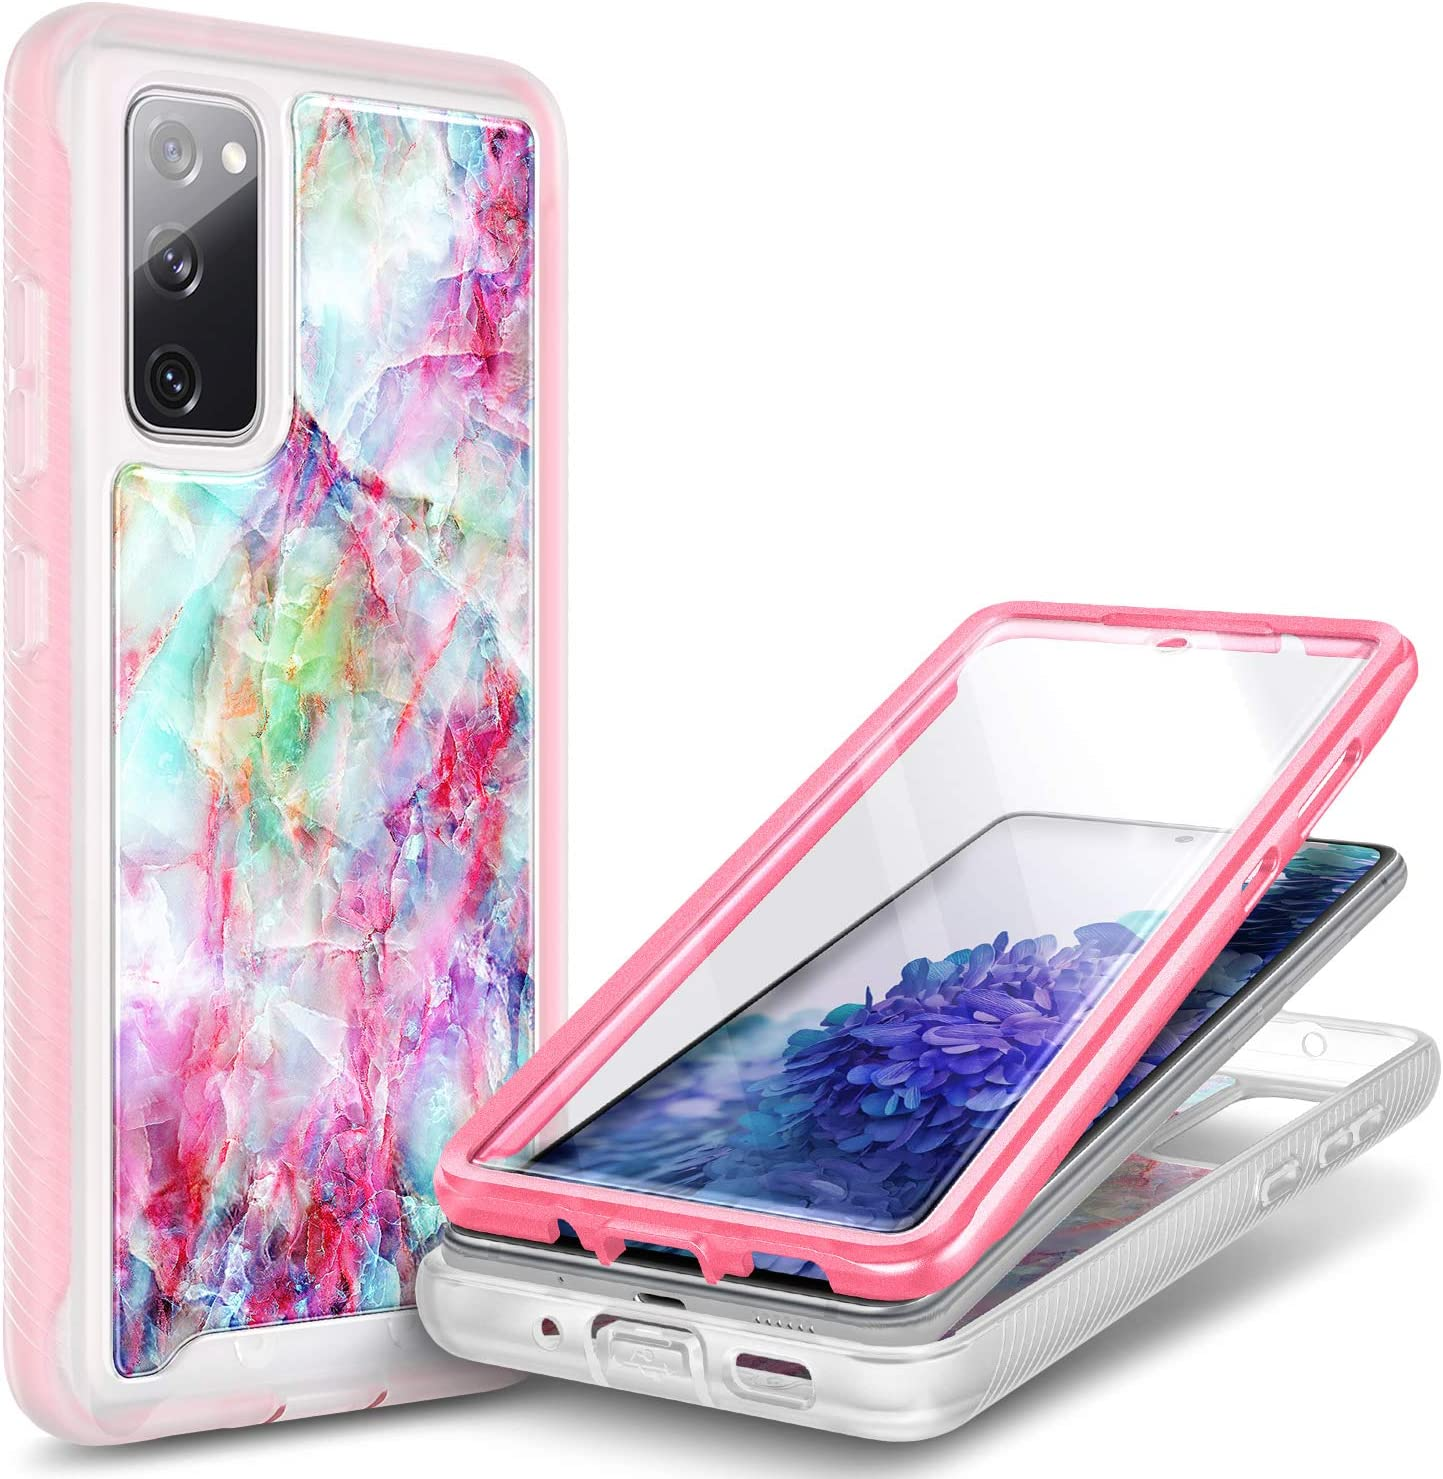 NZND Case for Samsung Galaxy S20 Built-in Pro Max 52% OFF New life with 5G Screen FE